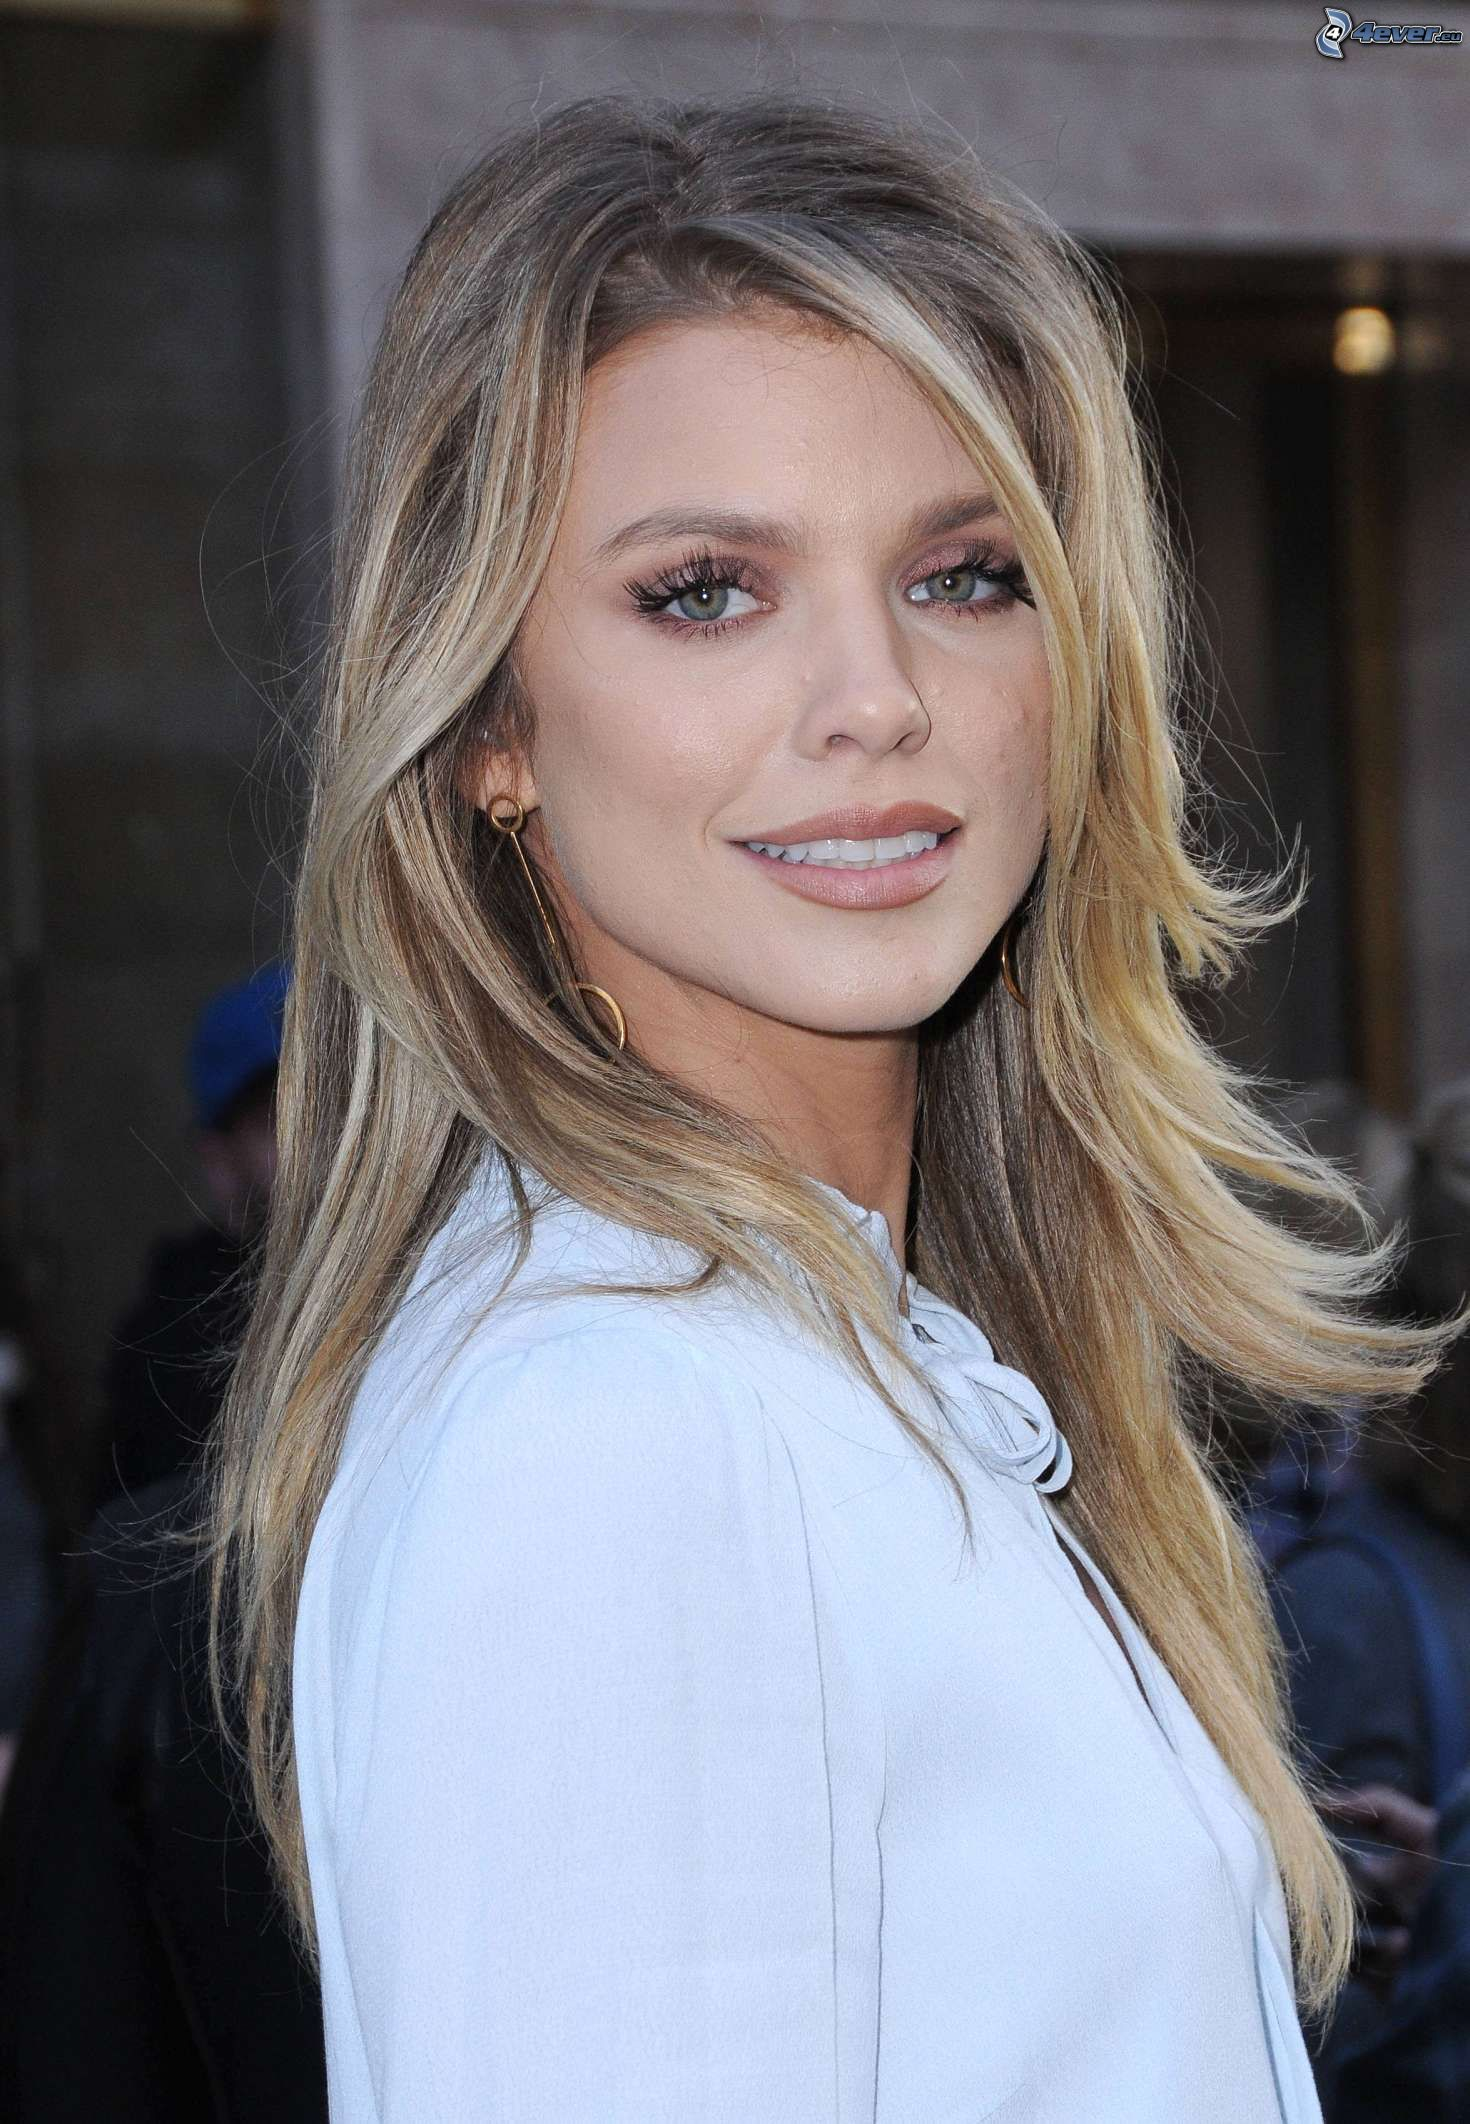 Leaked AnnaLynne McCord nudes (58 foto and video), Pussy, Cleavage, Twitter, panties 2015